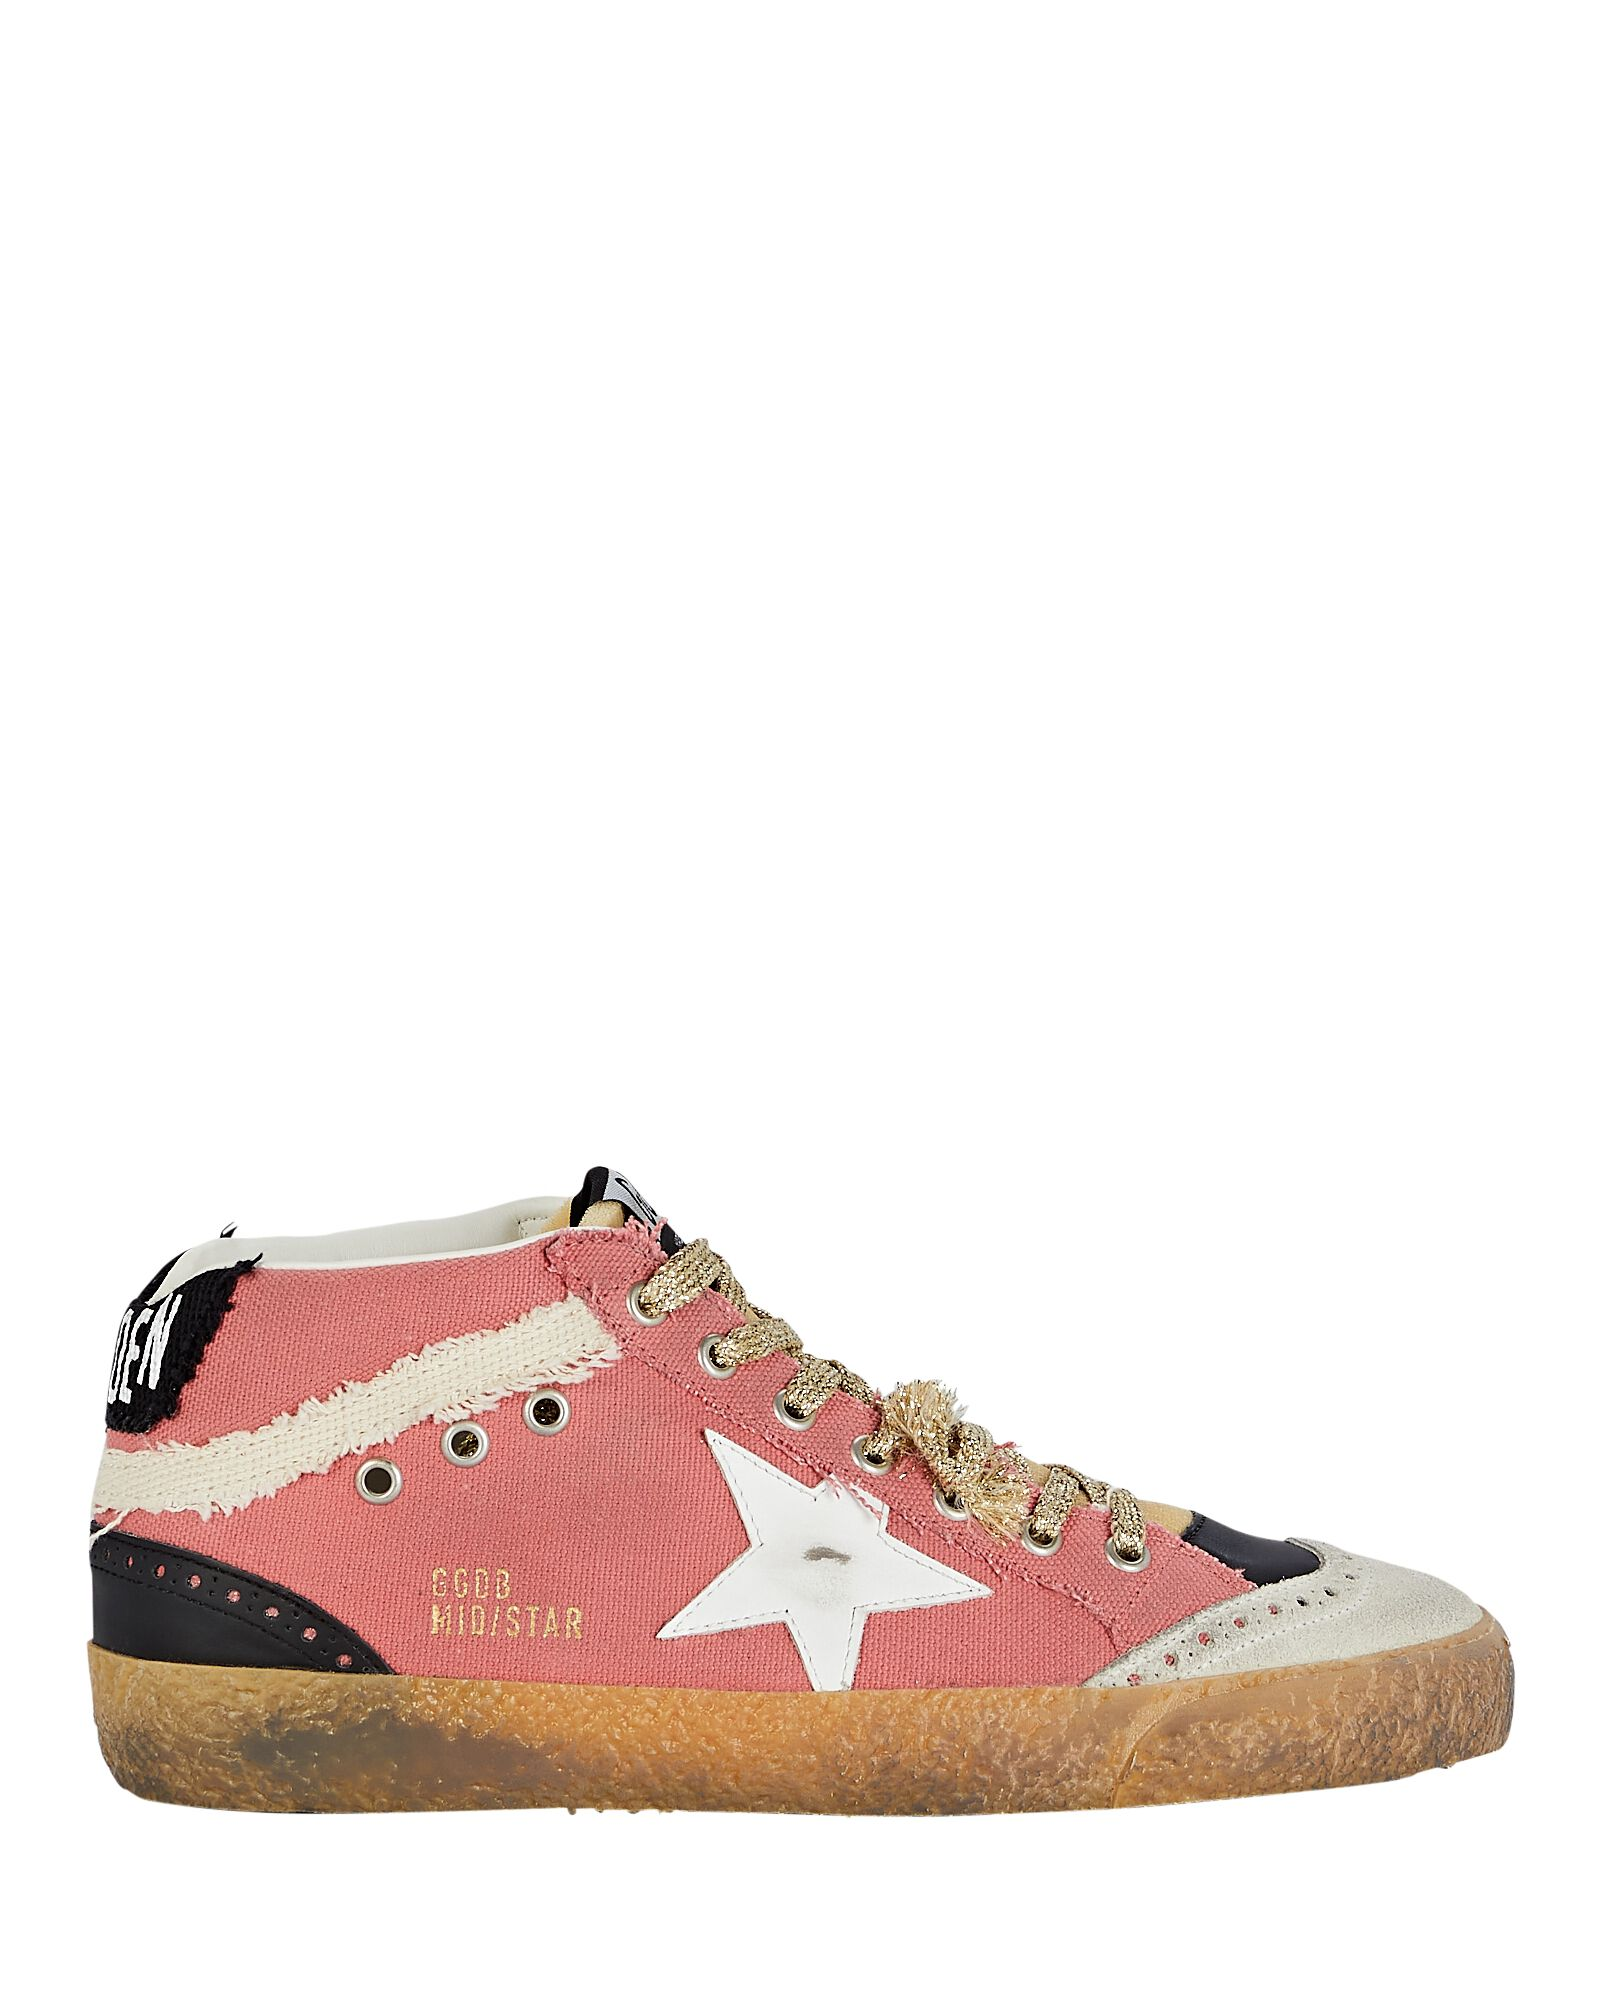 Mid Star Canvas Sneakers, PINK, hi-res